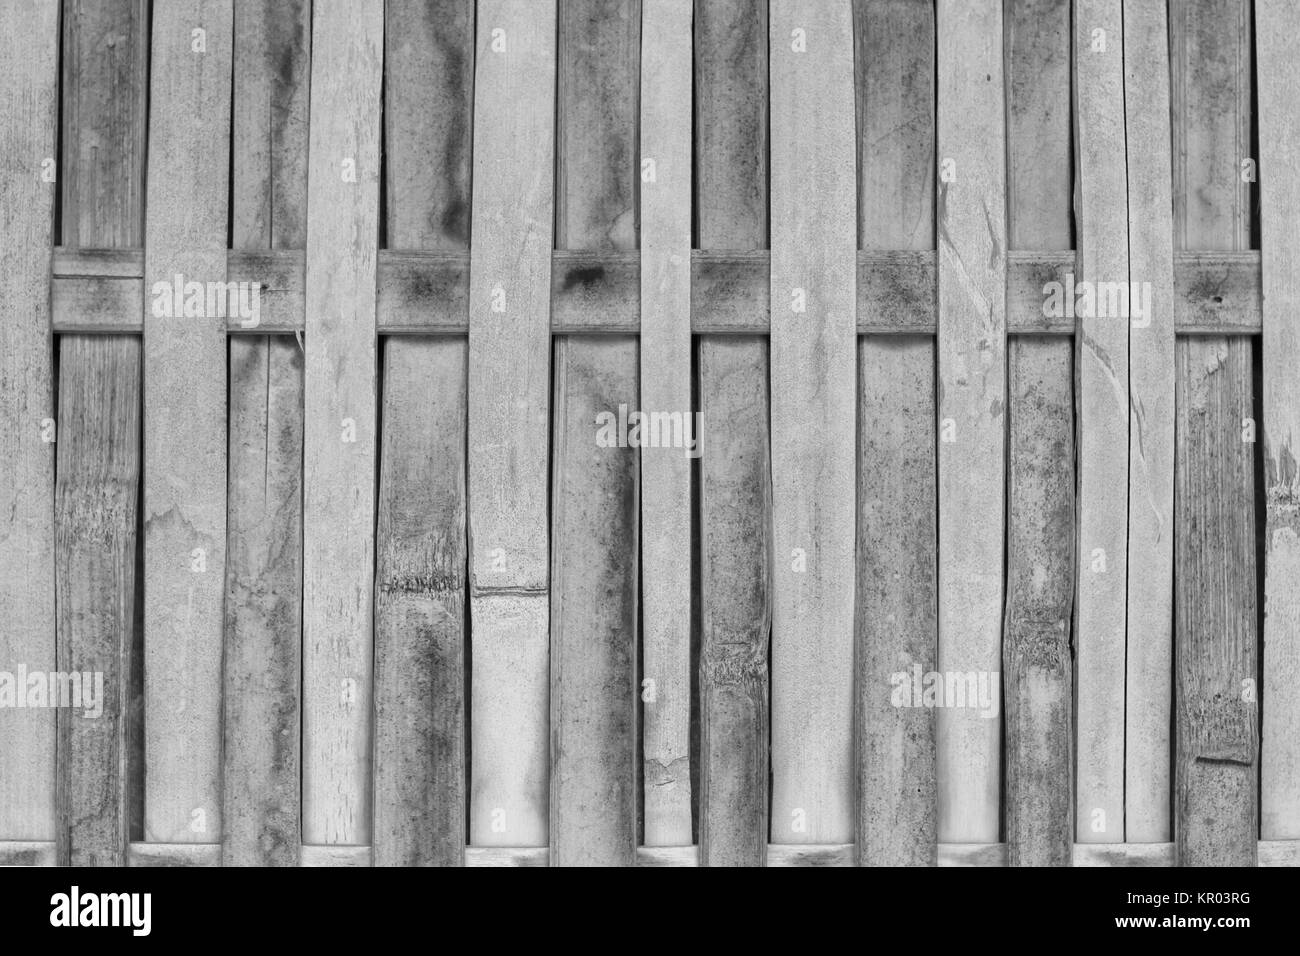 Close up bamboo fence with black and white tone - Stock Image